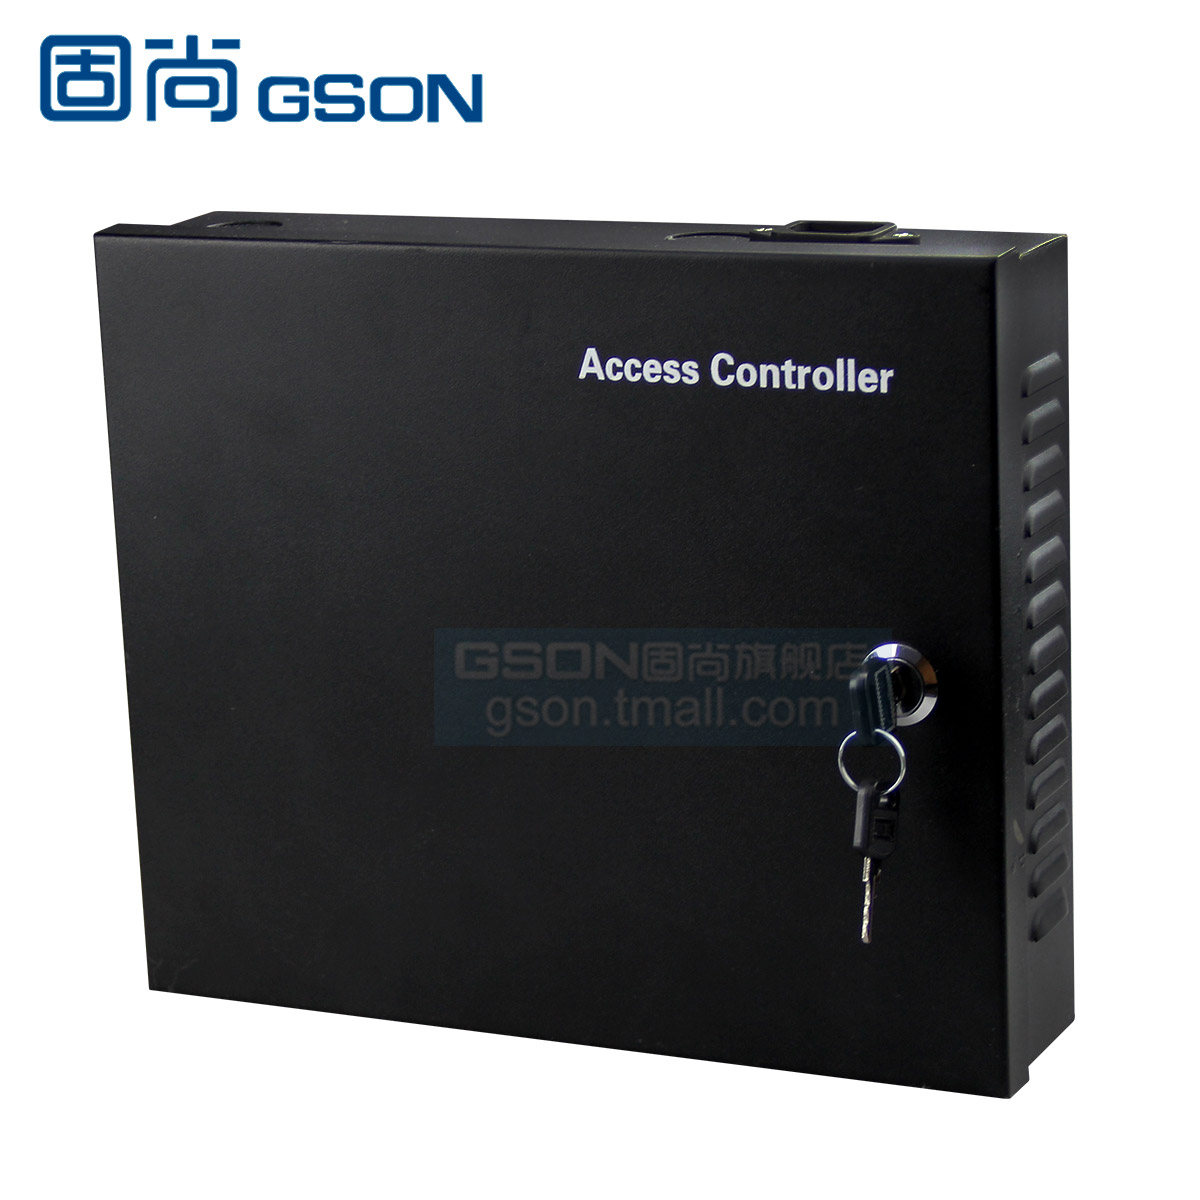 Access control power supply access chassis power tillers multi door controller supporting power supply box